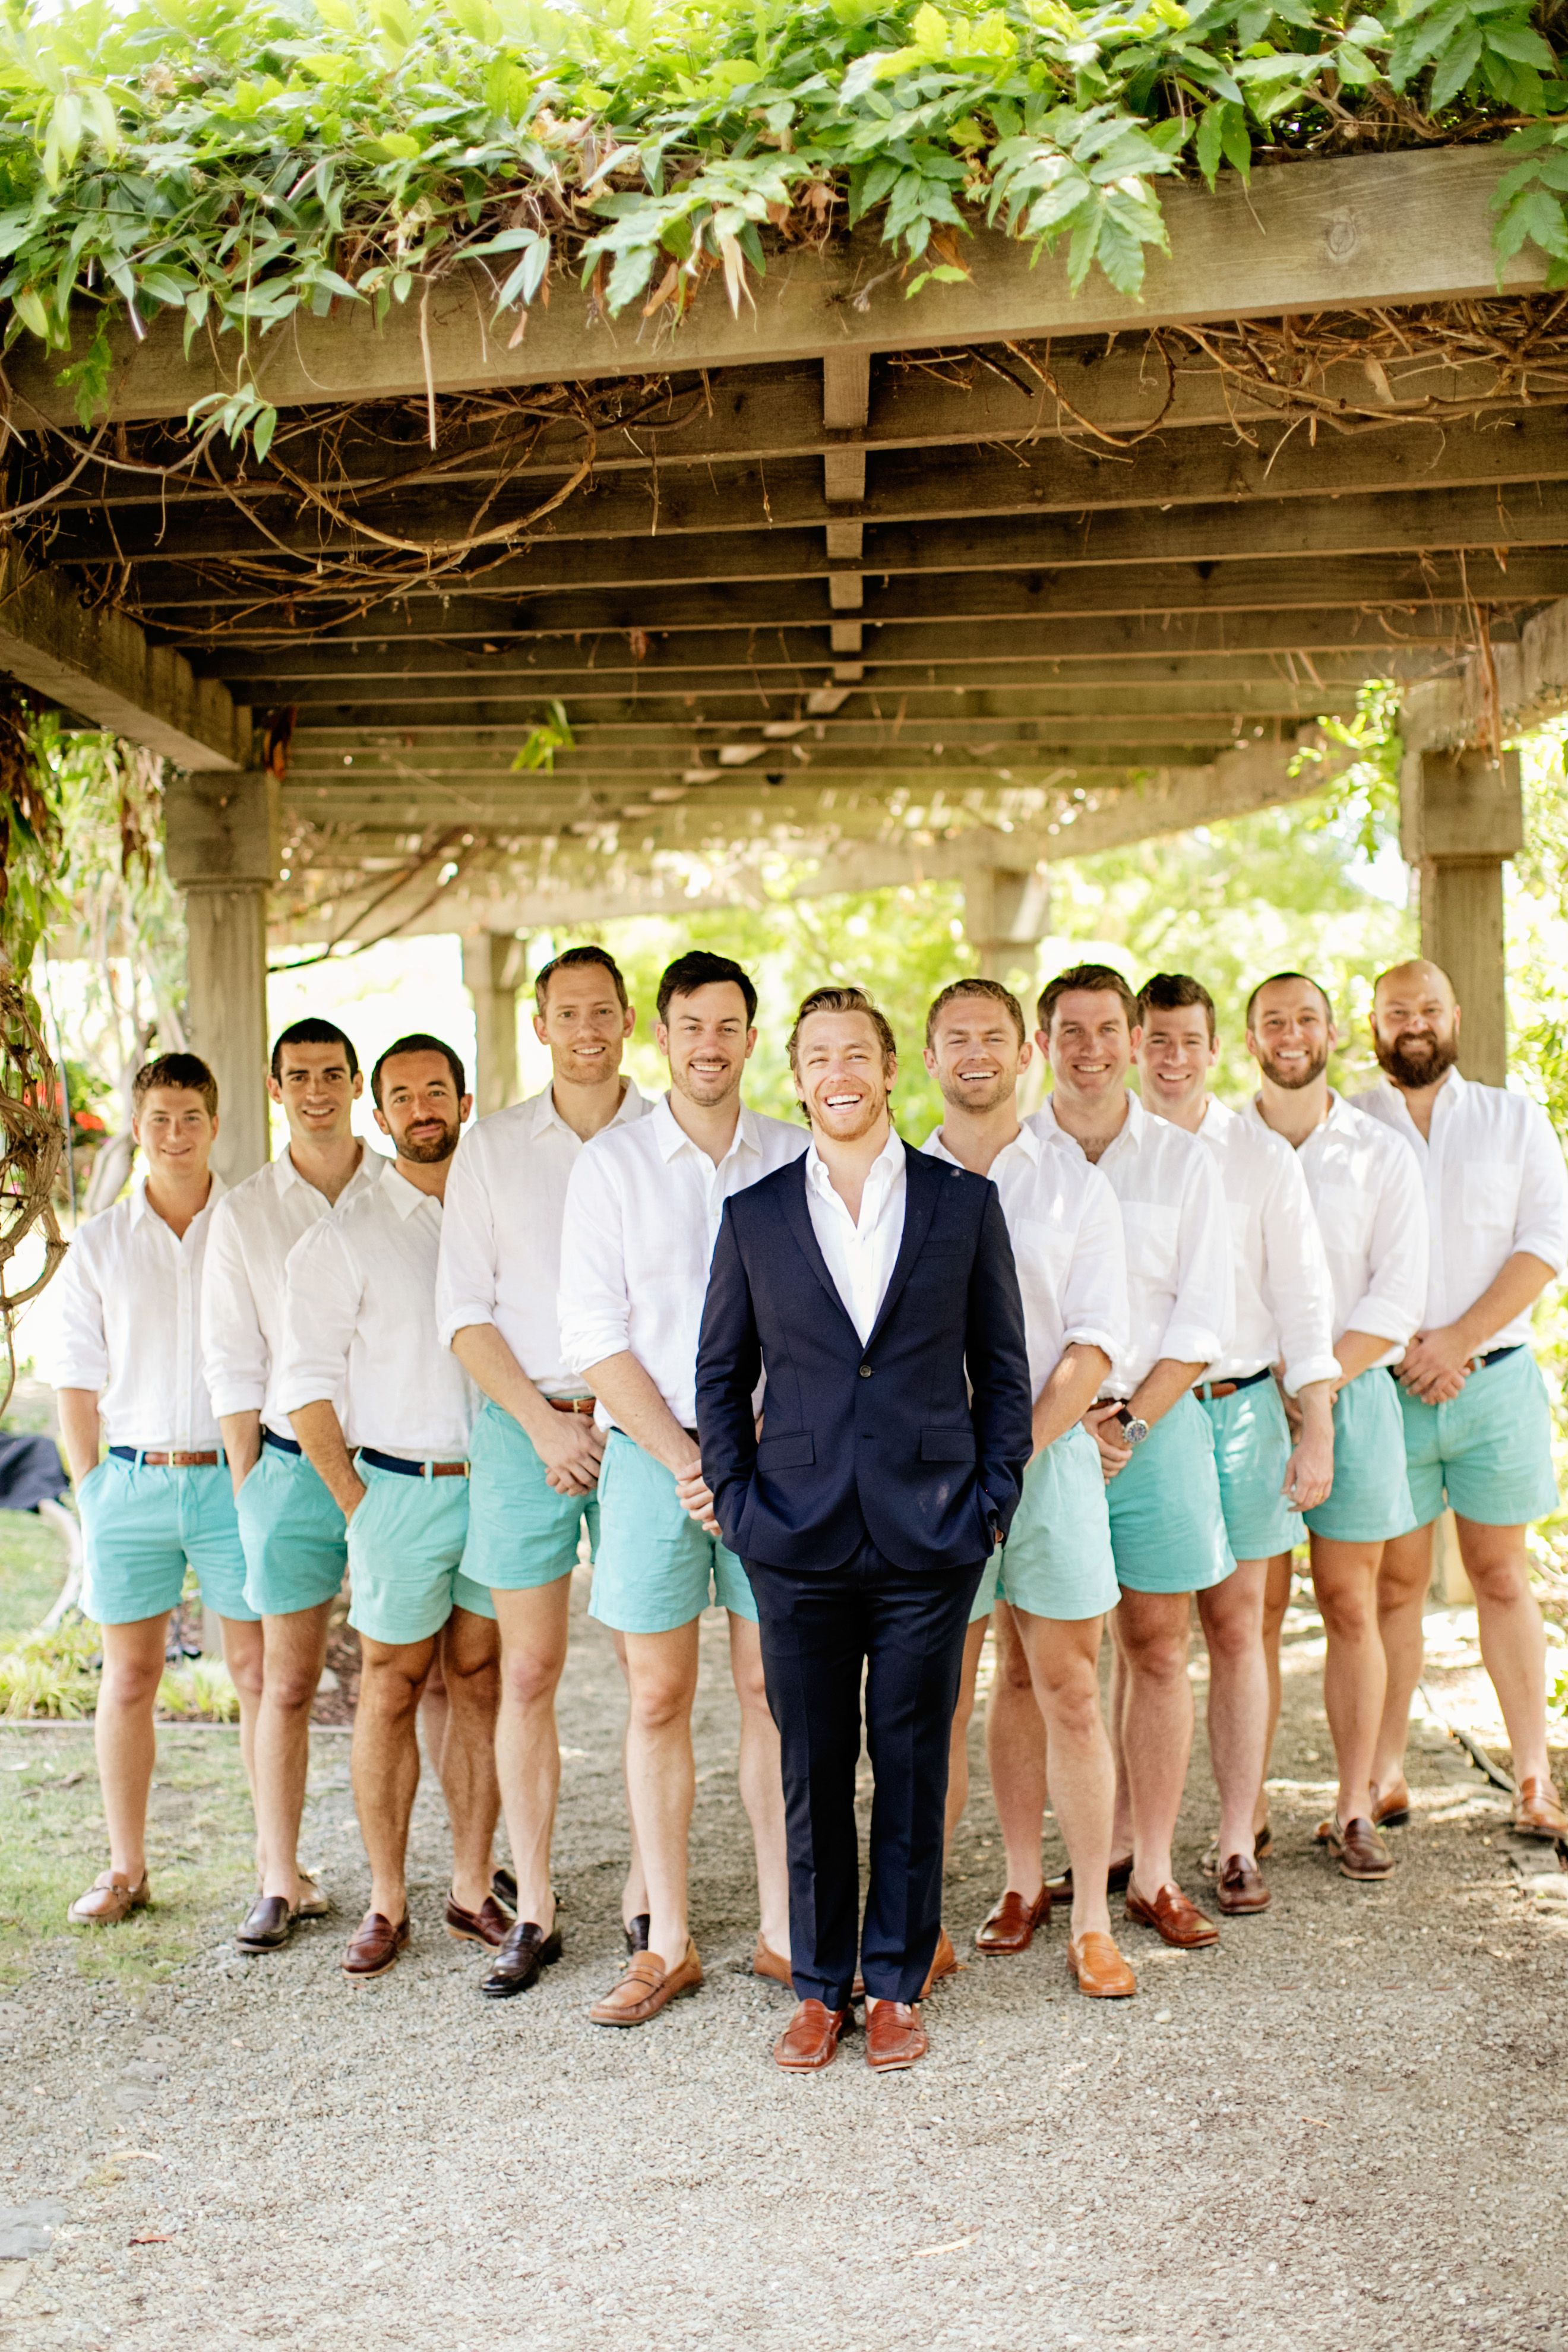 The Groomsmen In Shorts I Absolutely Love This Idea D Beach Wedding Groom Attire Groomsmen Outfits Beach Wedding Groomsmen